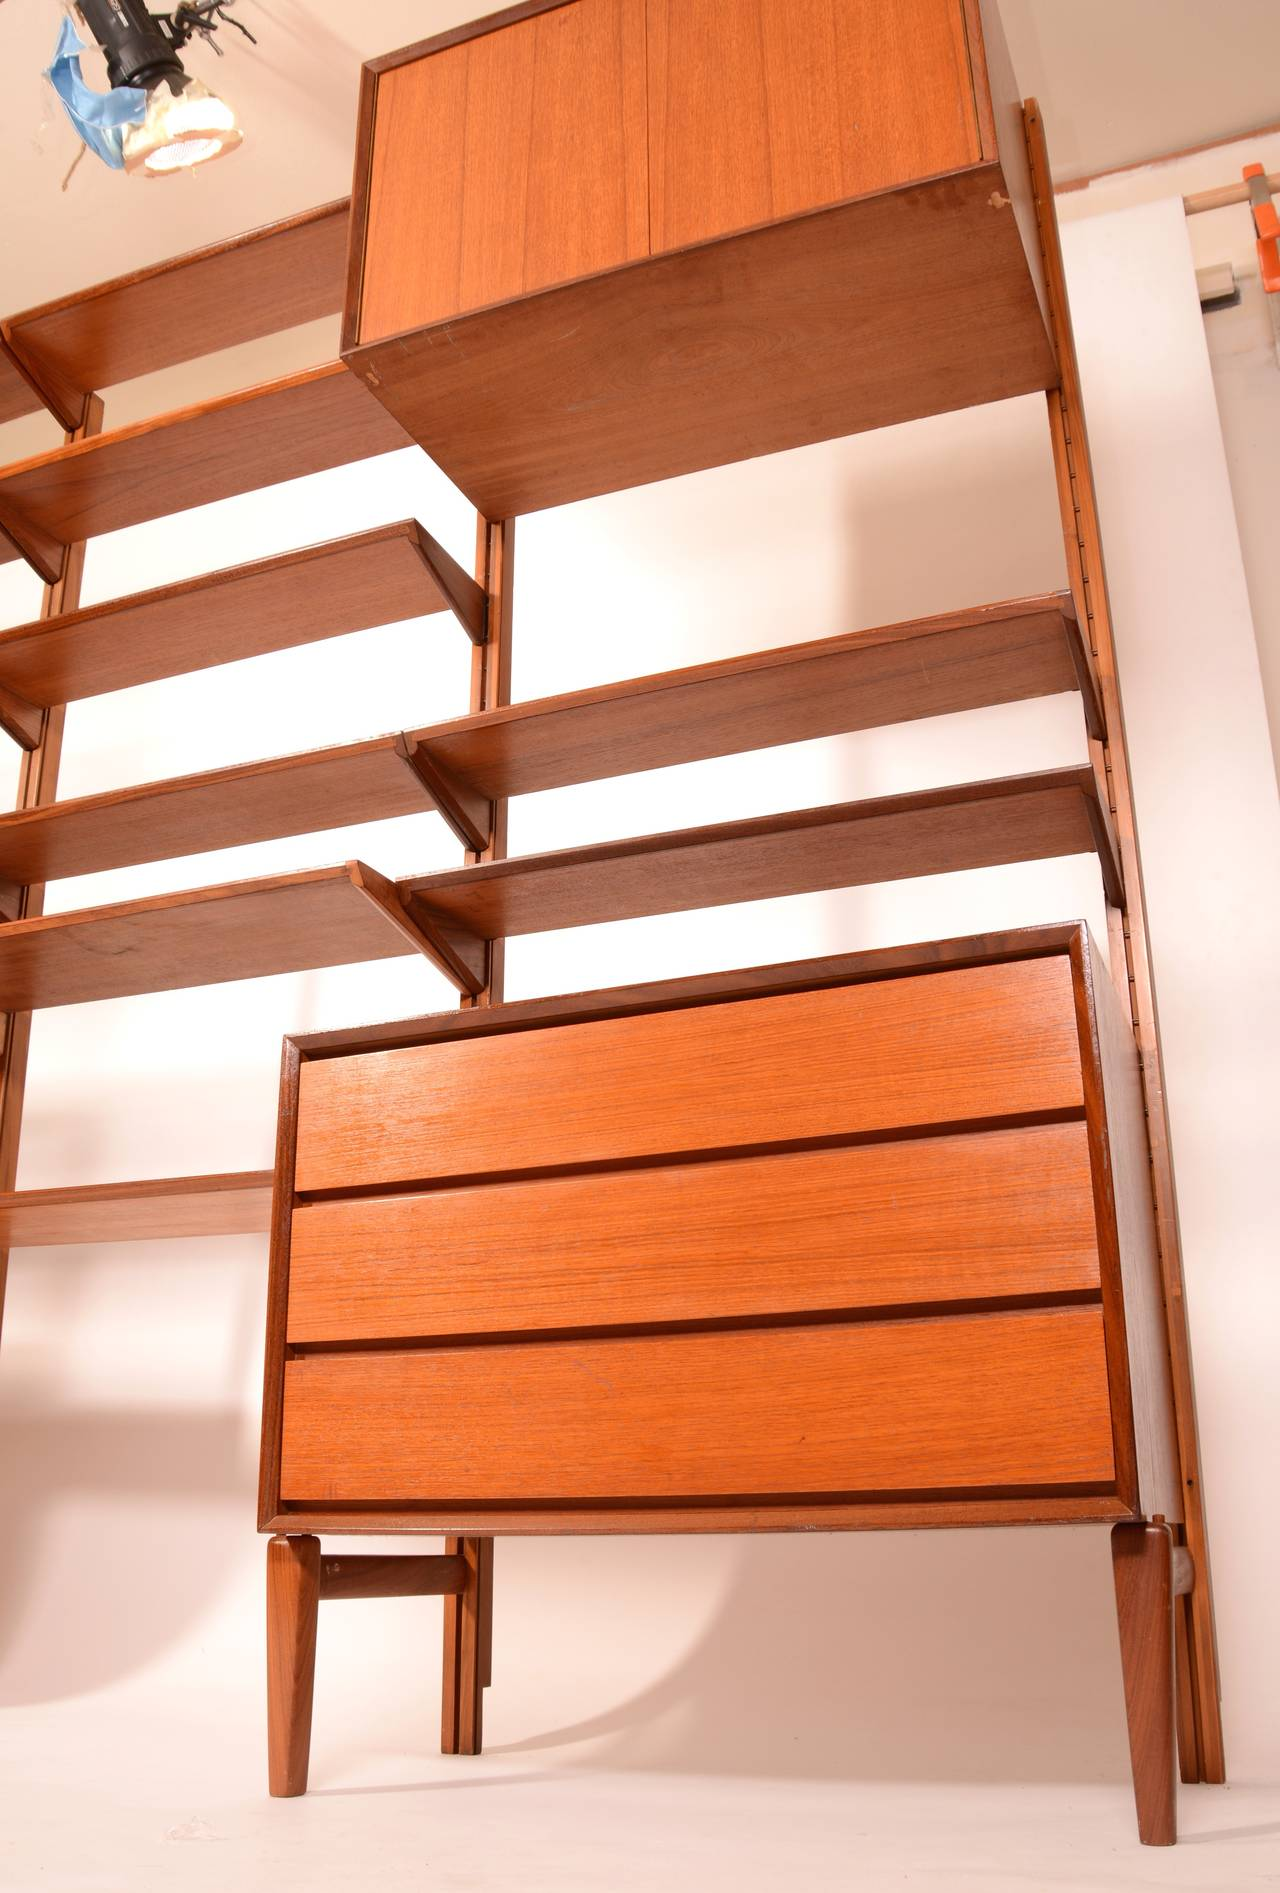 This Is A Great Freestanding Scandinavian Modern Wall Unit Made From  Beautifully Selected Teak Veneer Over